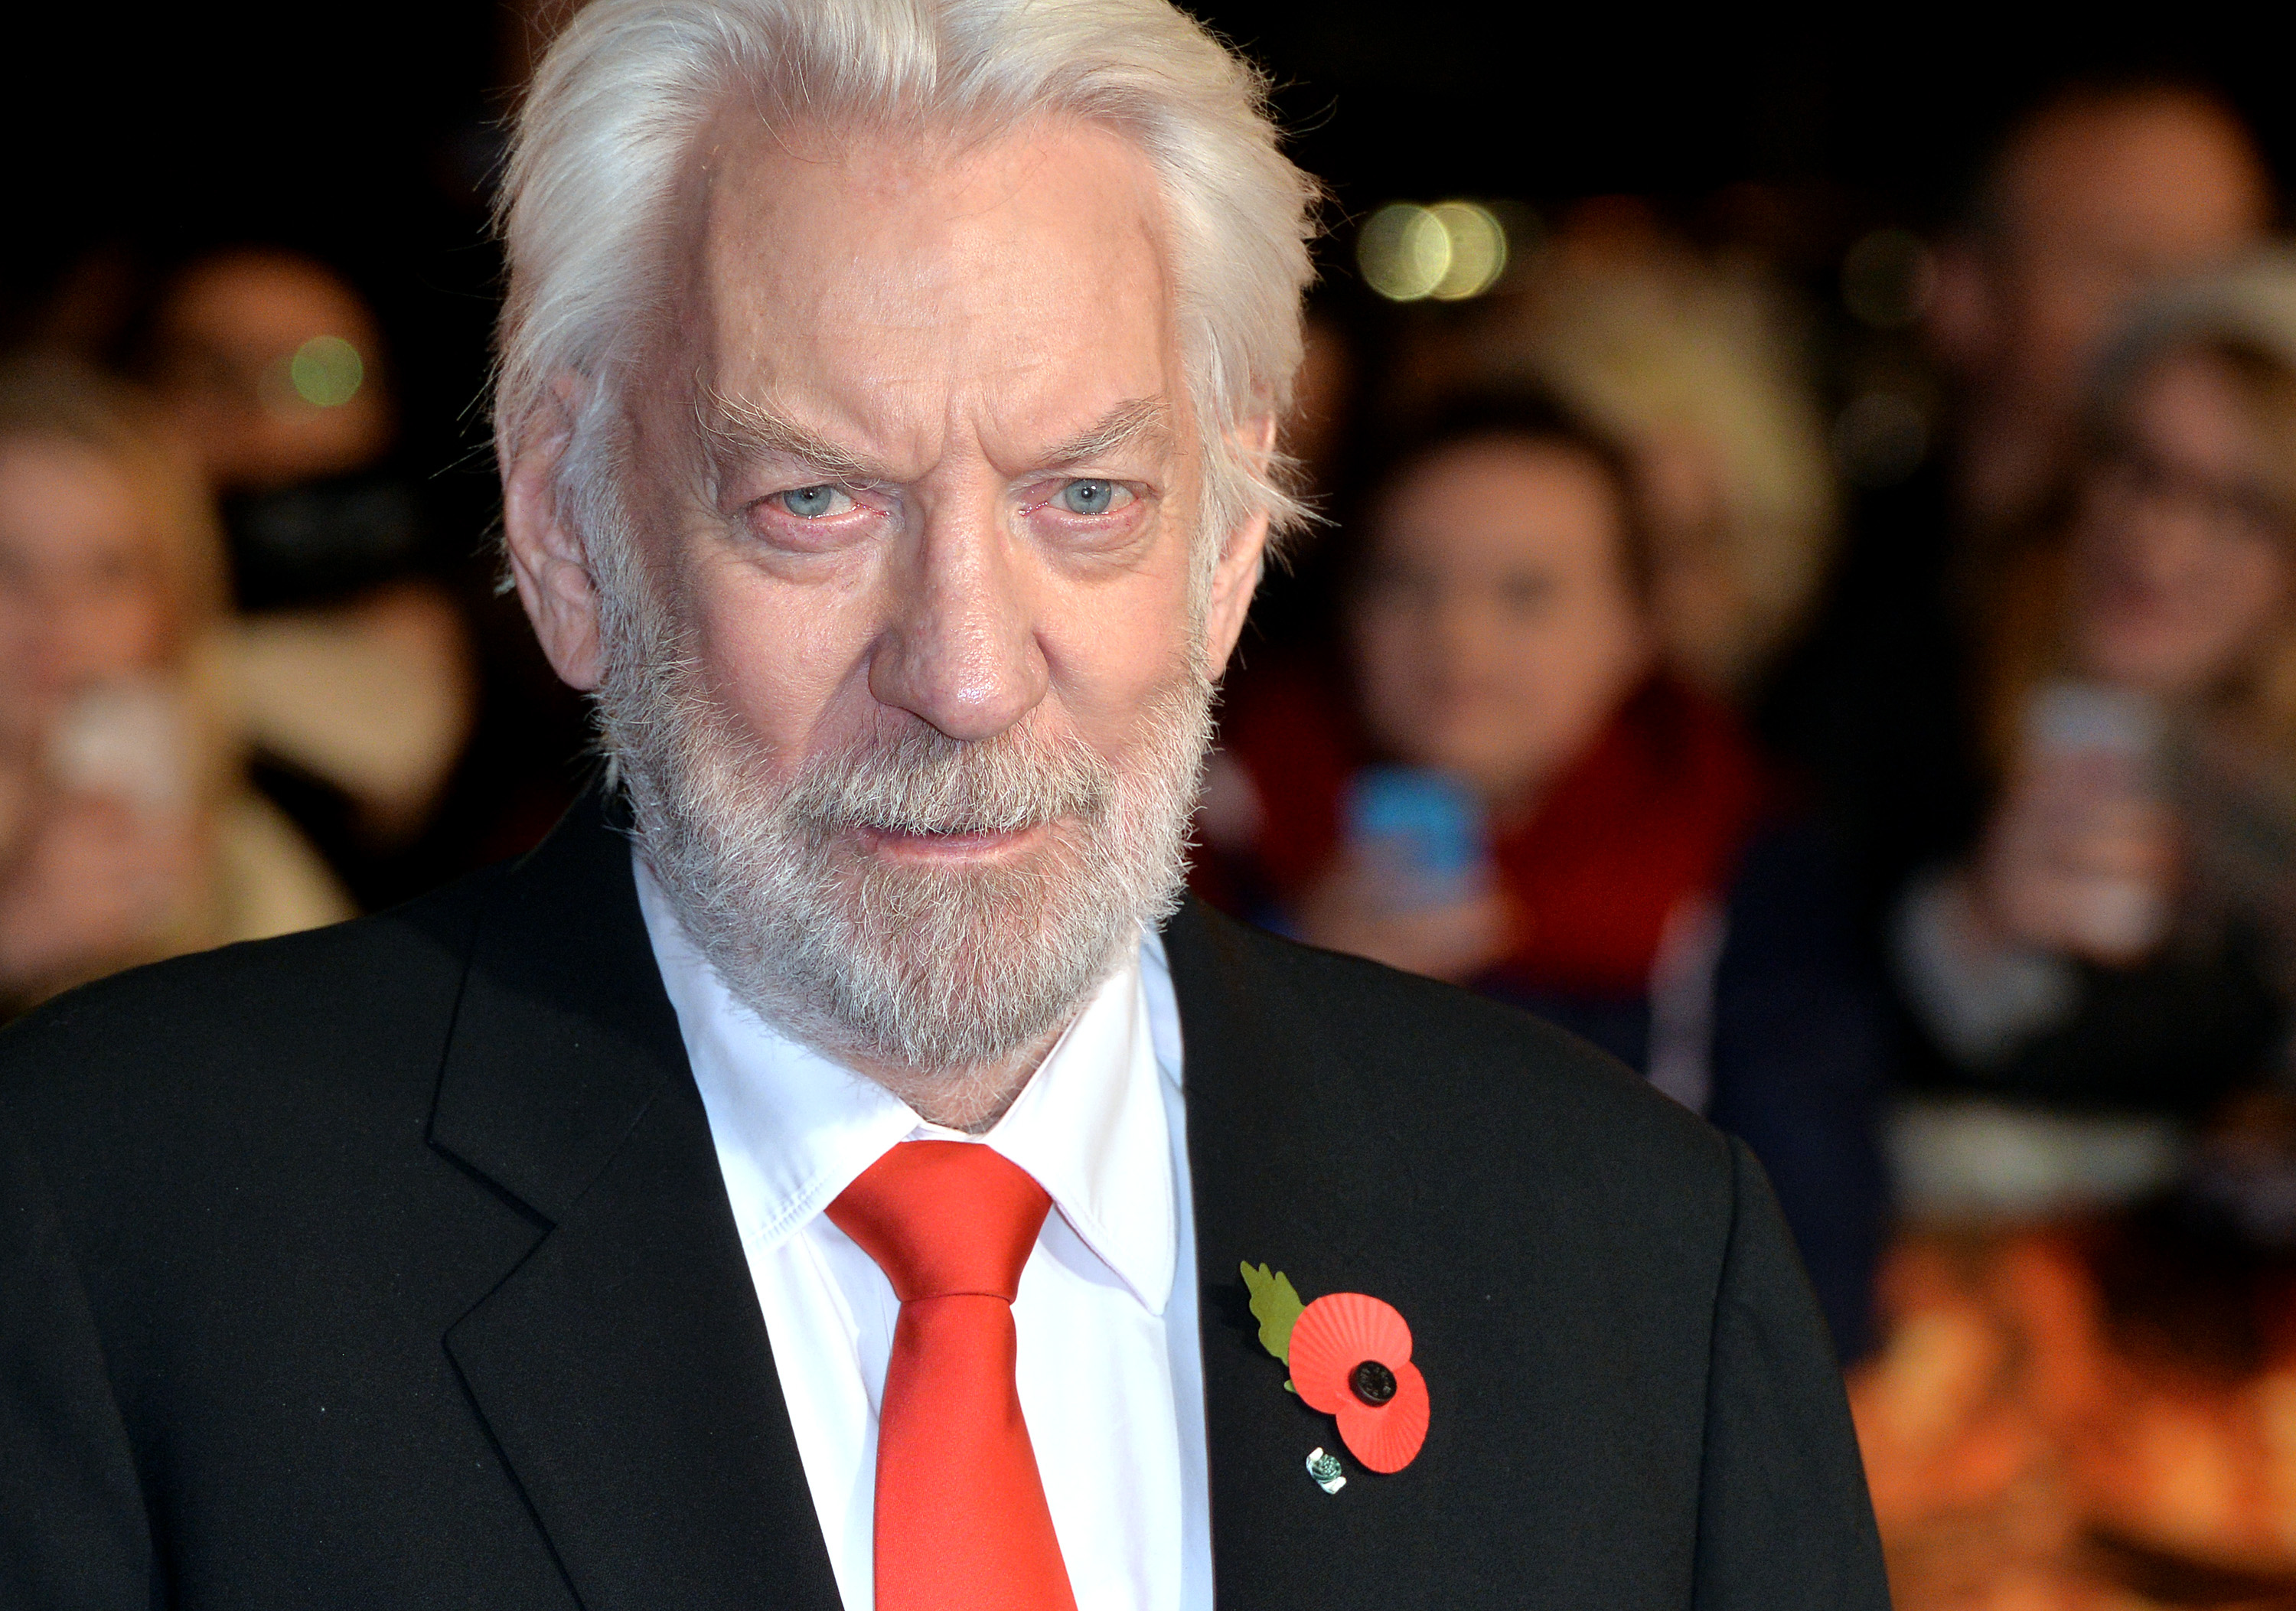 Donald Sutherland attends the world Ppremiere of  The Hunger Games: Mockingjay Part 1  at Odeon Leicester Square on November 10, 2014 in London, England.